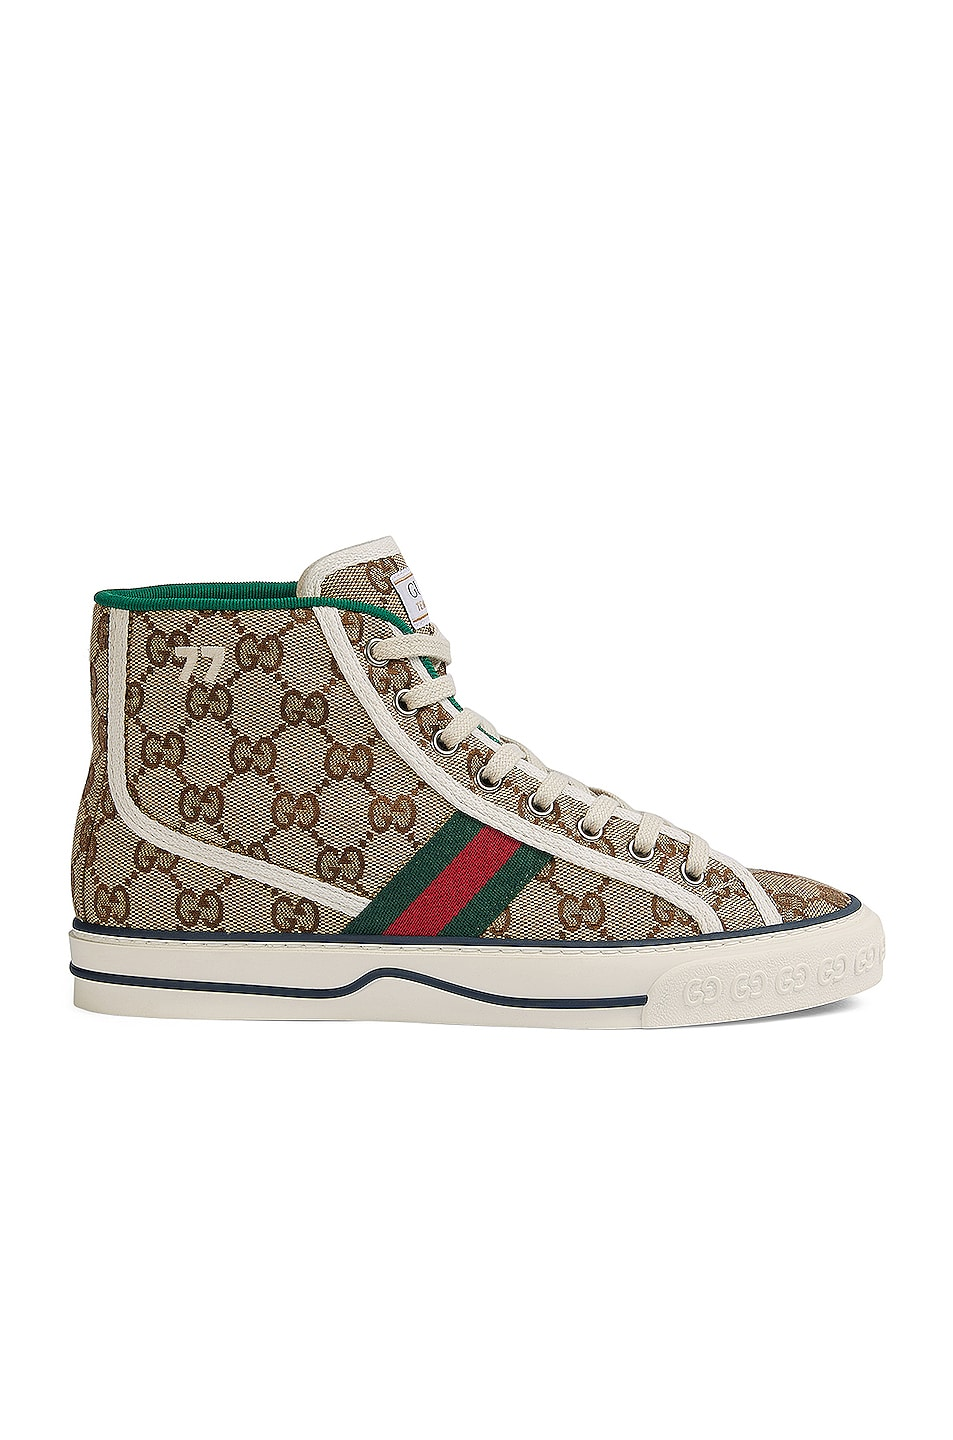 Image 1 of Gucci Tennis 1977 High Booties in Beige Ebony & Mystic White